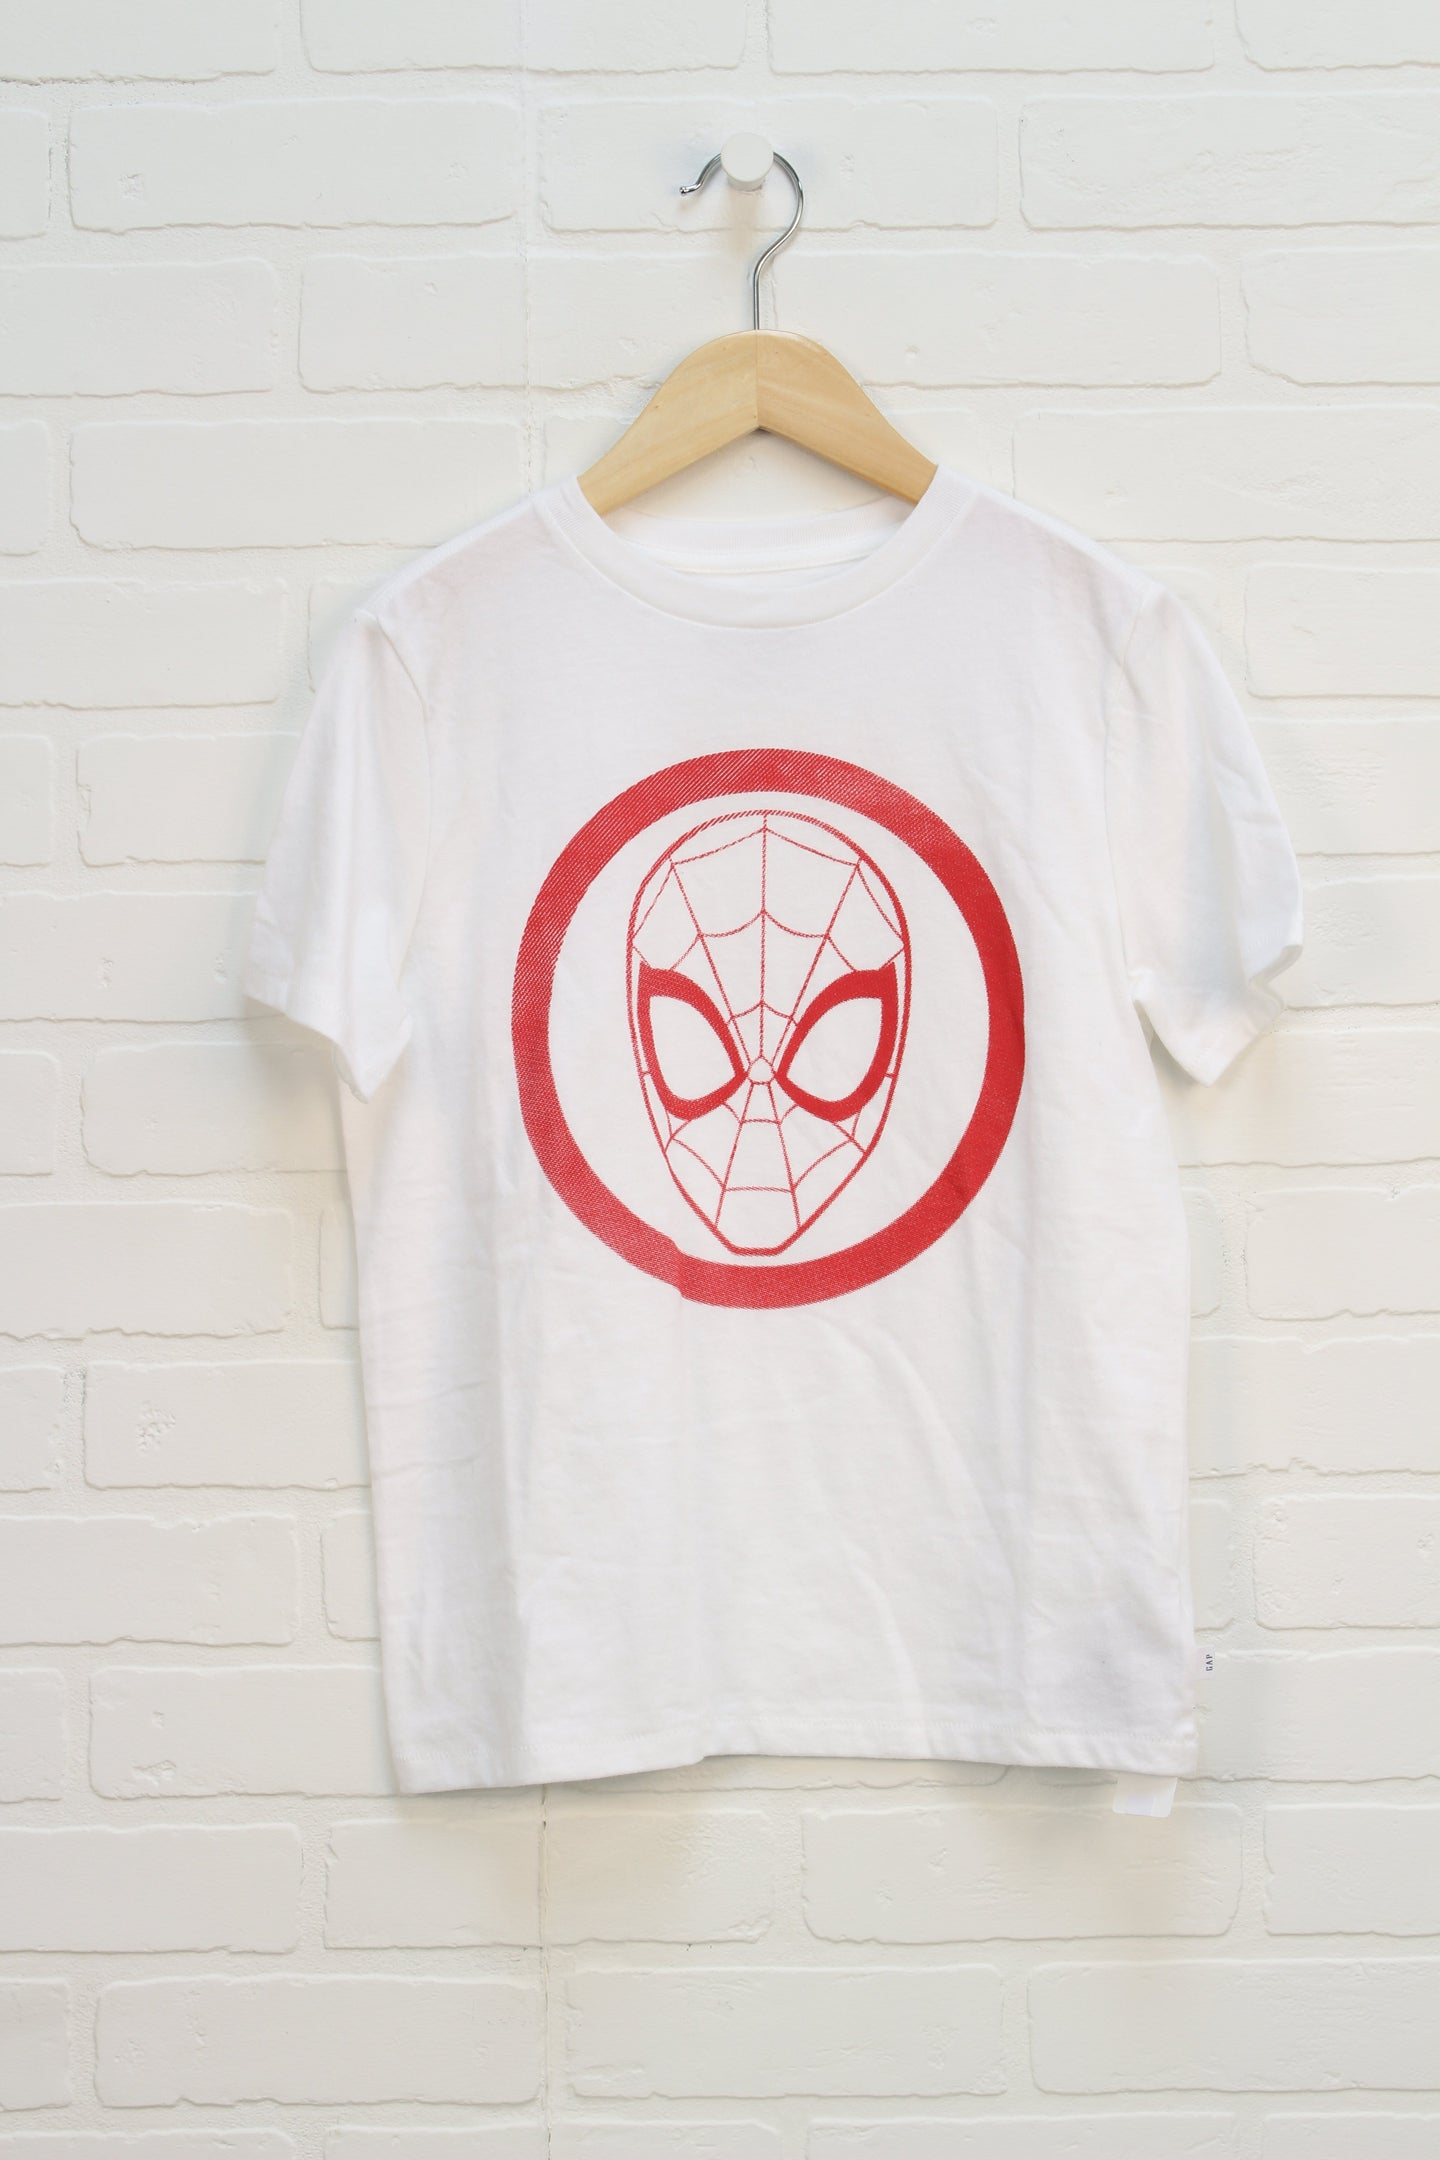 White + Red Graphic T-Shirt: Spider-Man (Size M/8-9)